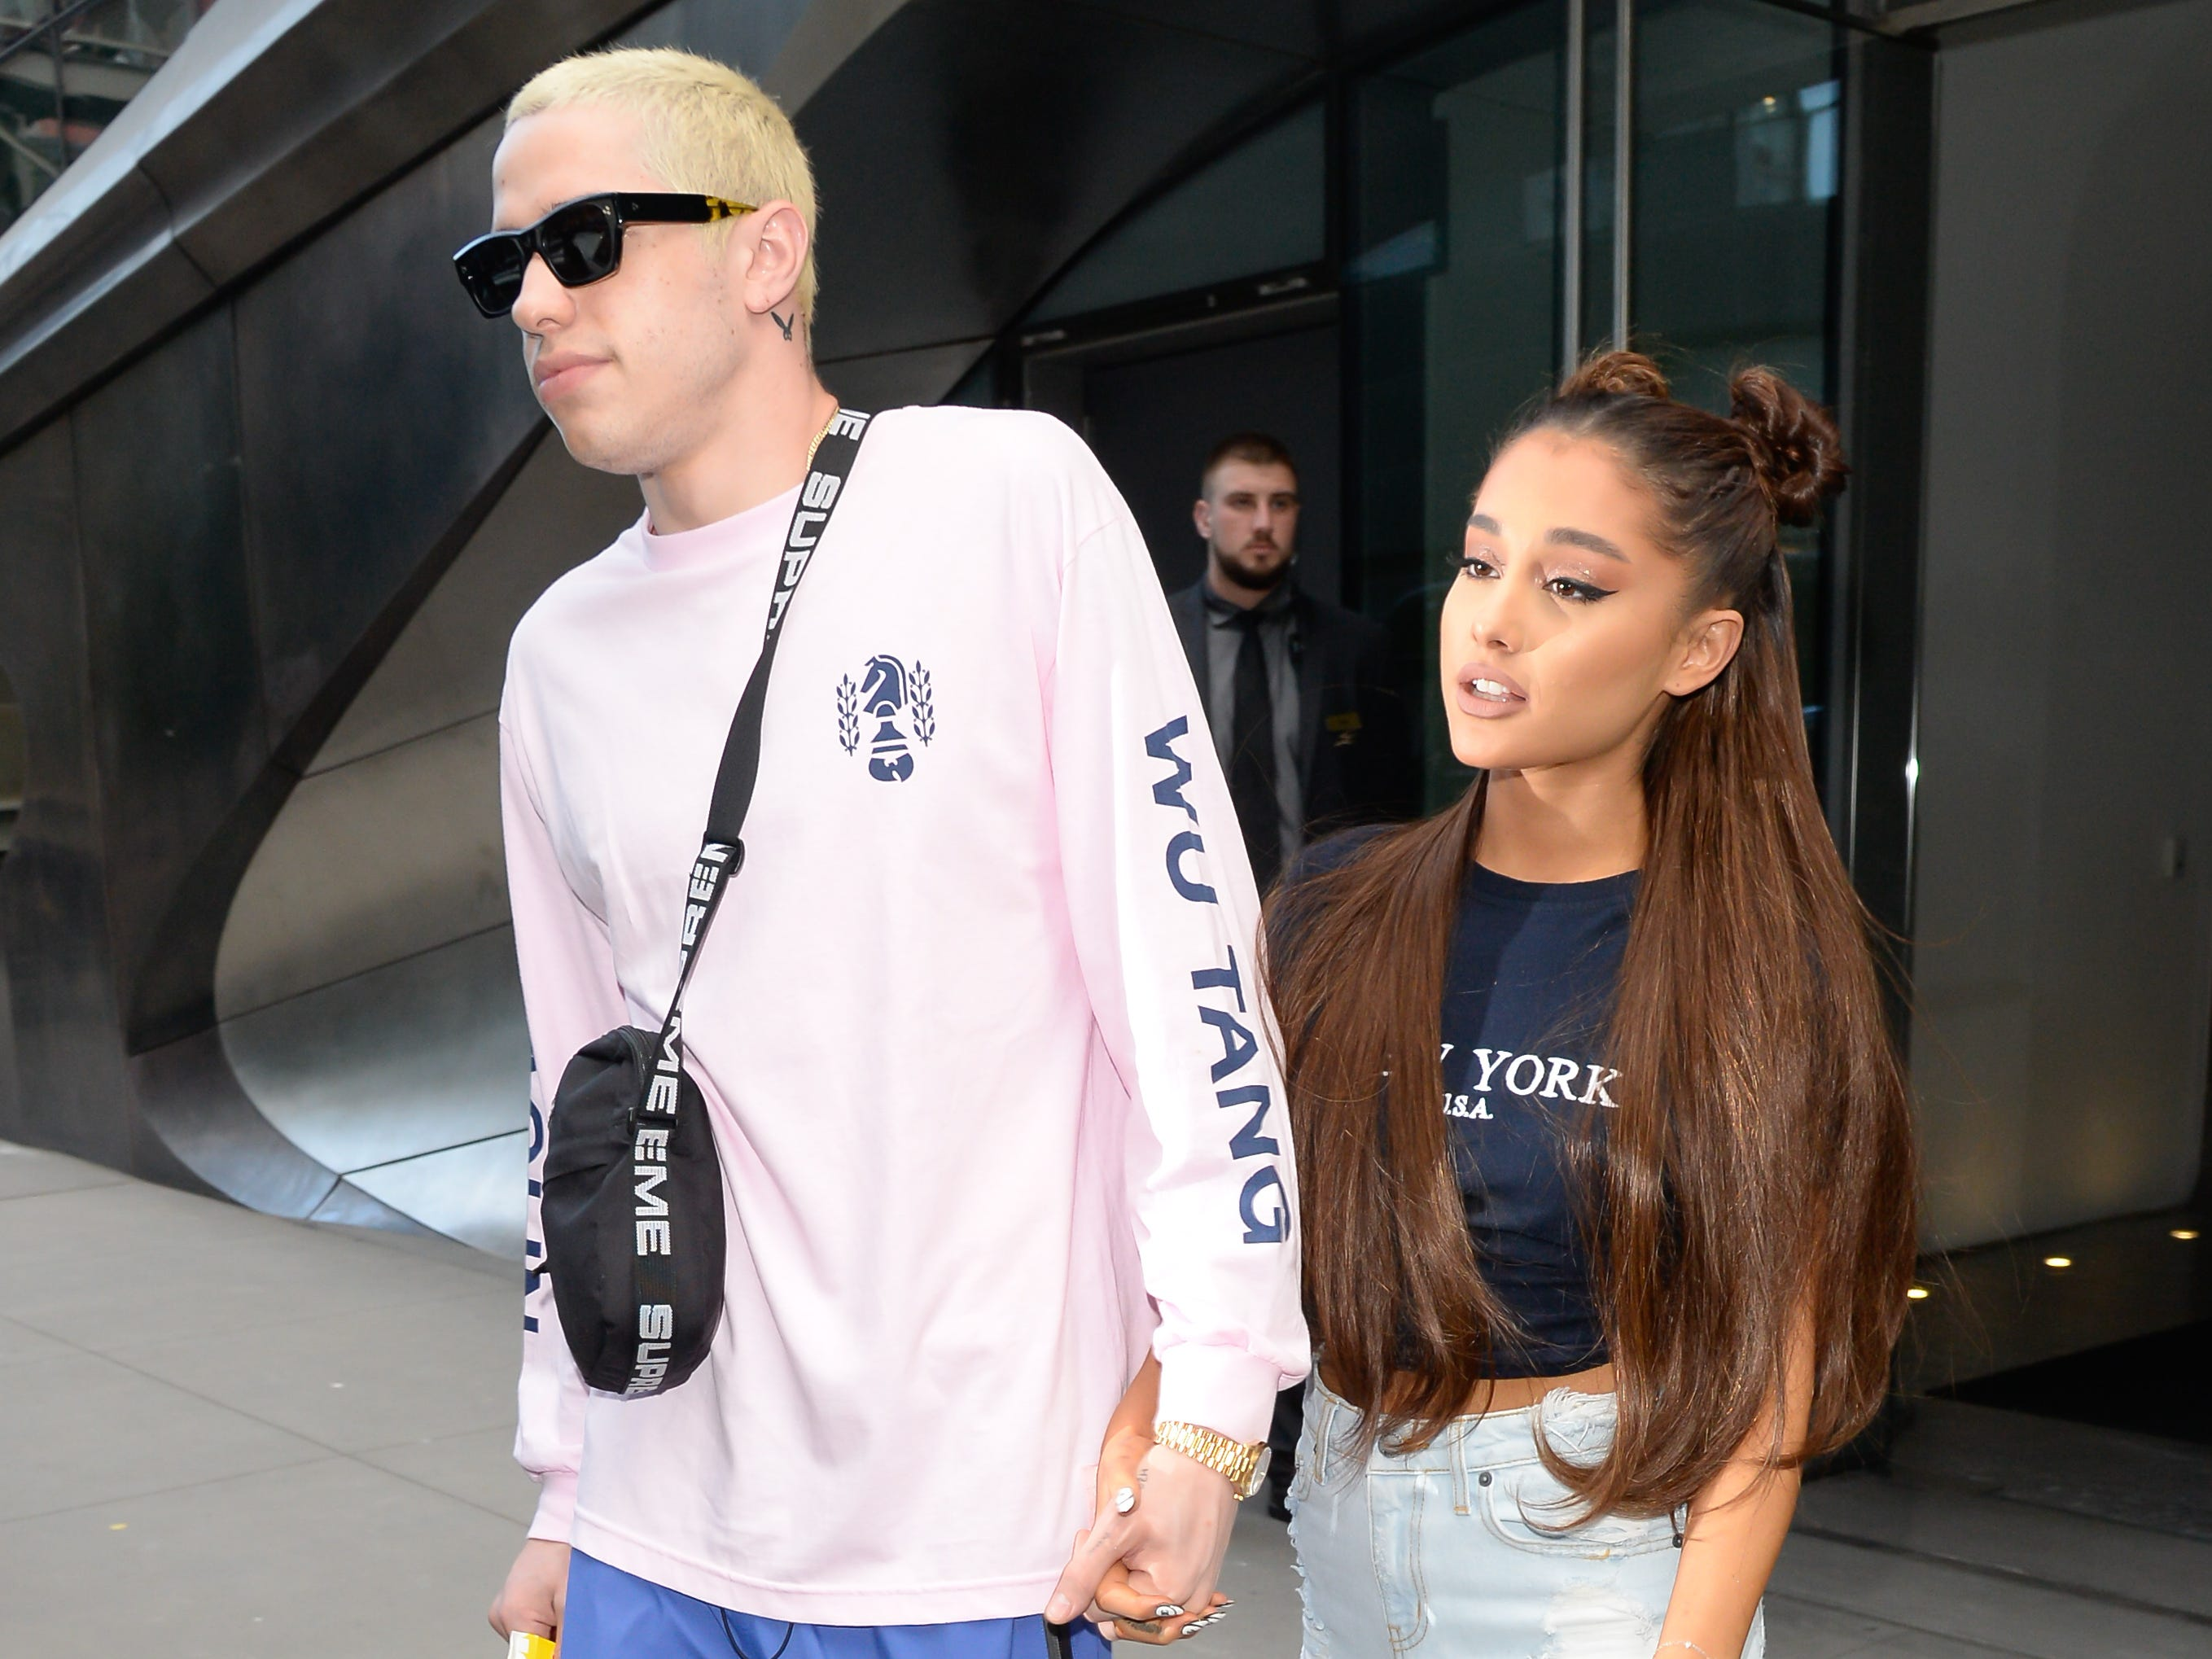 Singer Ariana Grande and Pete Davidson are seen walking in Midtown on July 11, 2018 in New York City.